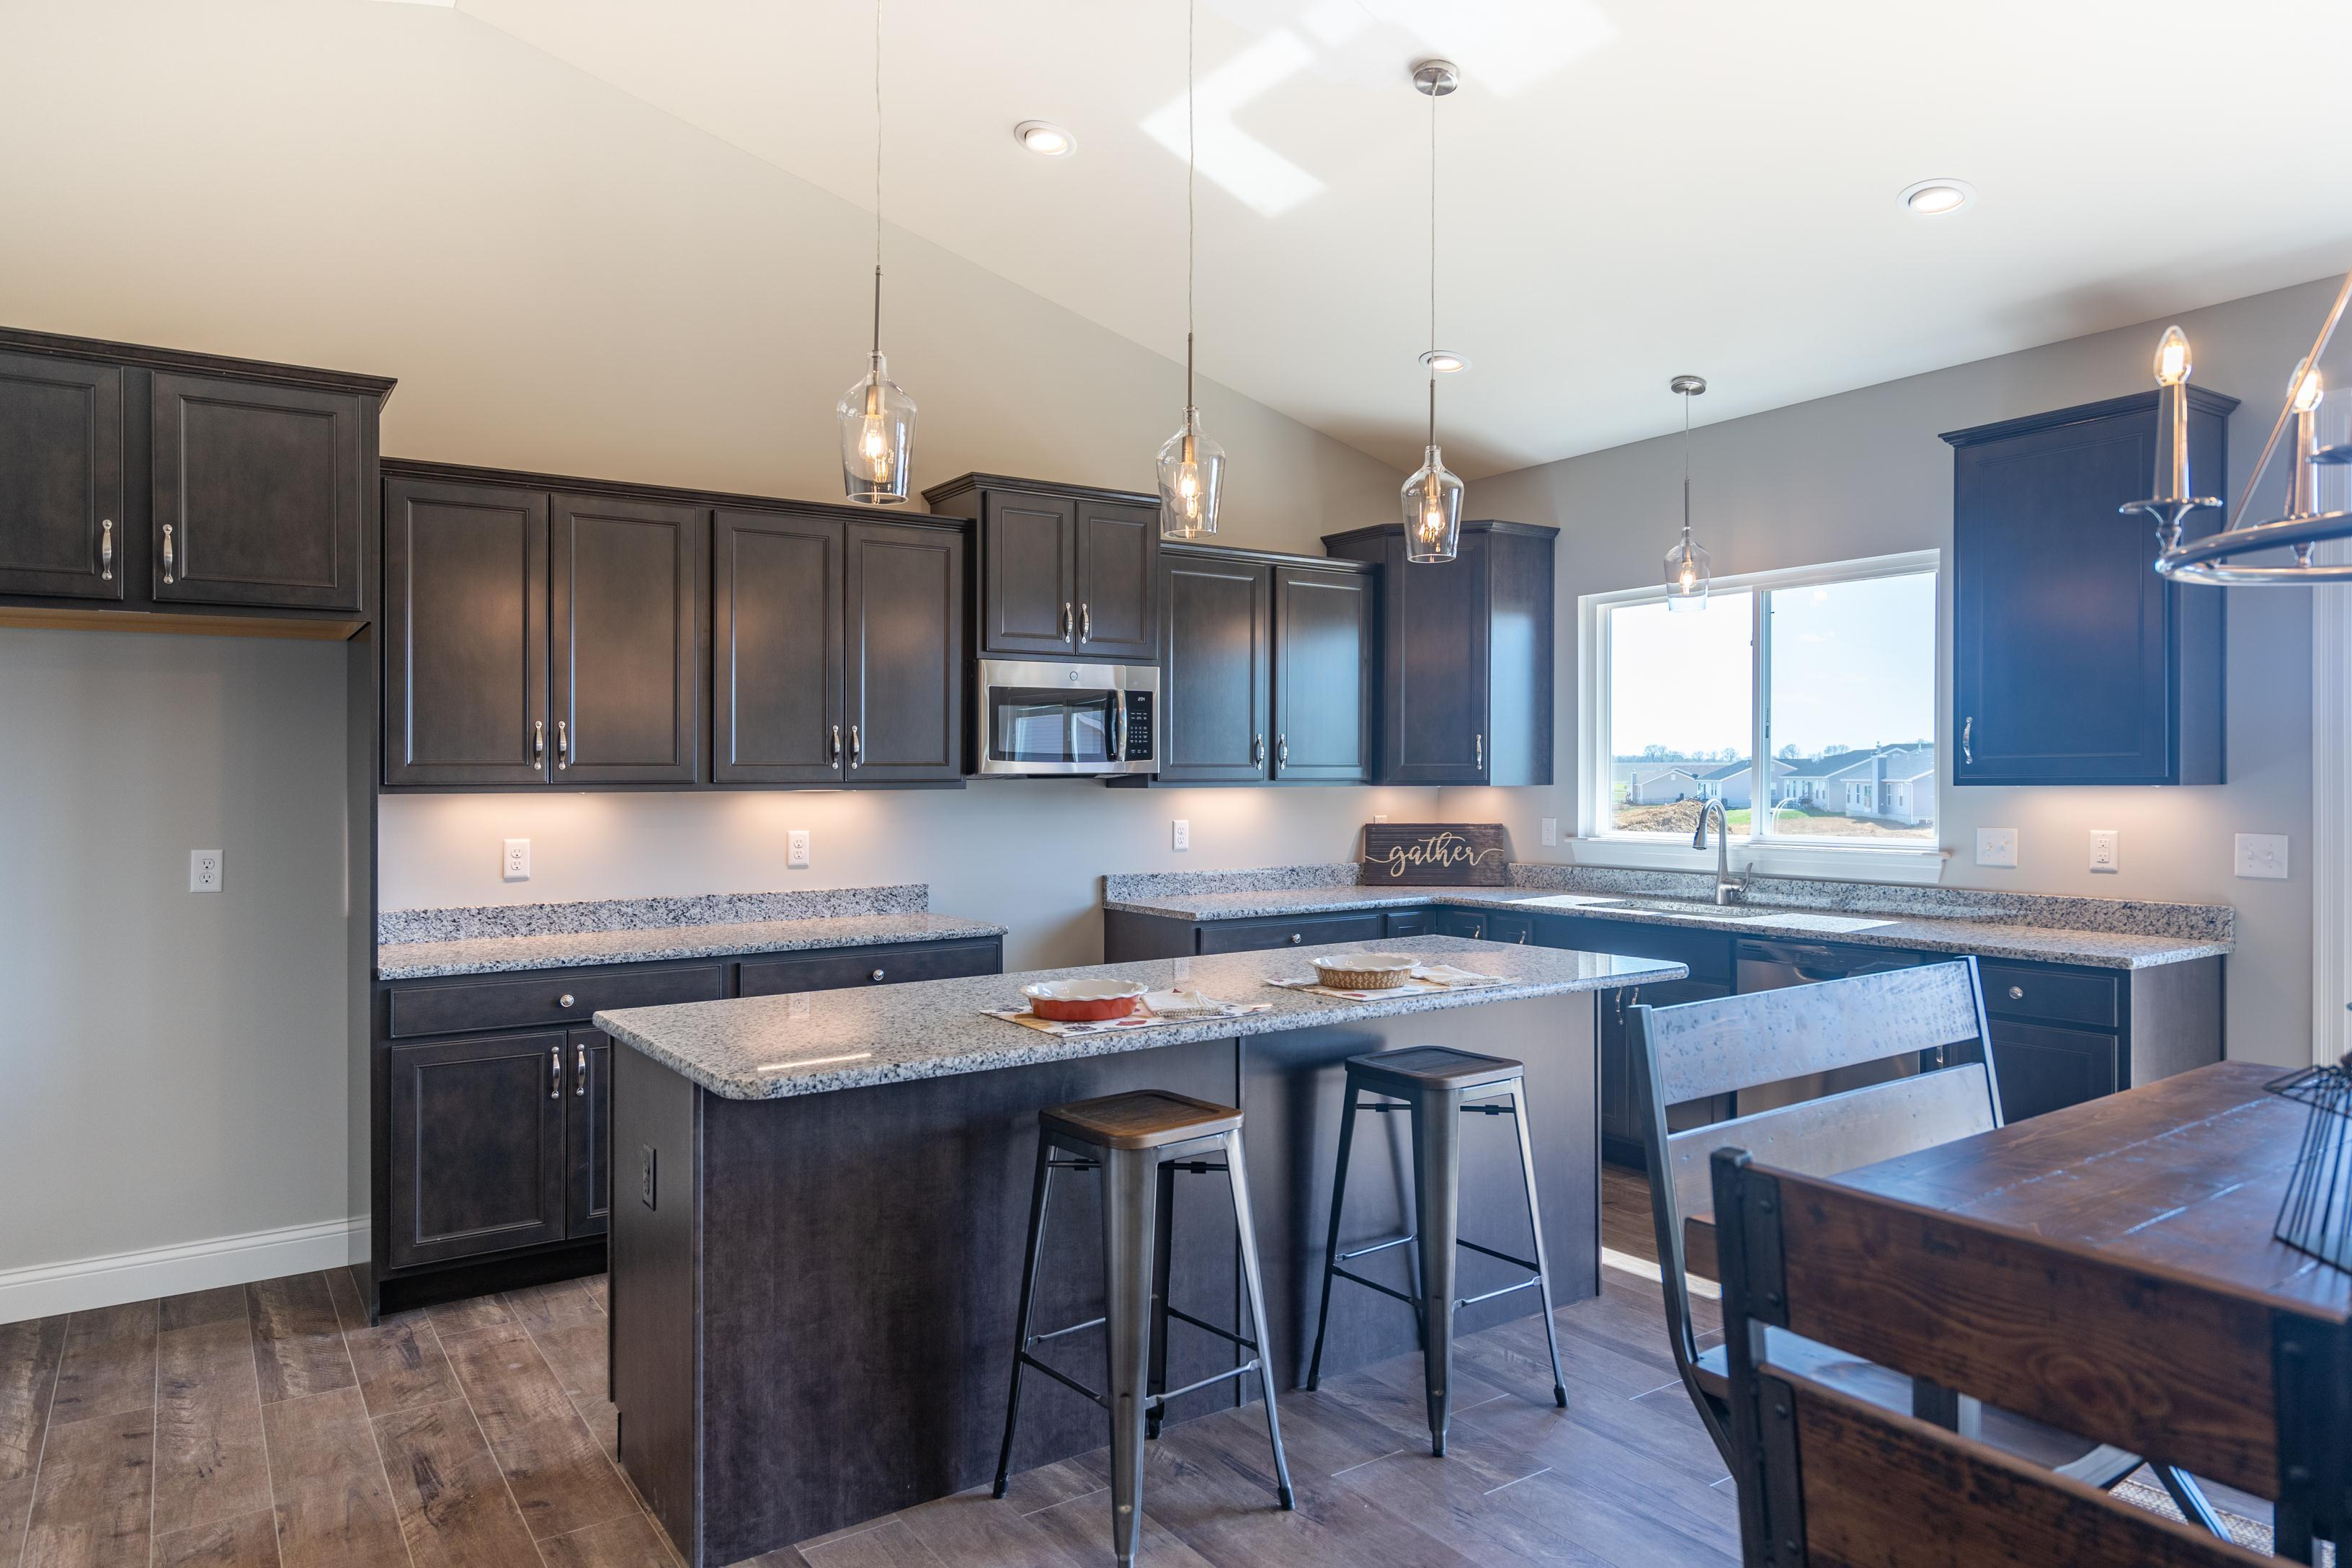 Kitchen featured in The Willow - 4 Car Garage By T.R. Hughes Homes in St. Louis, MO